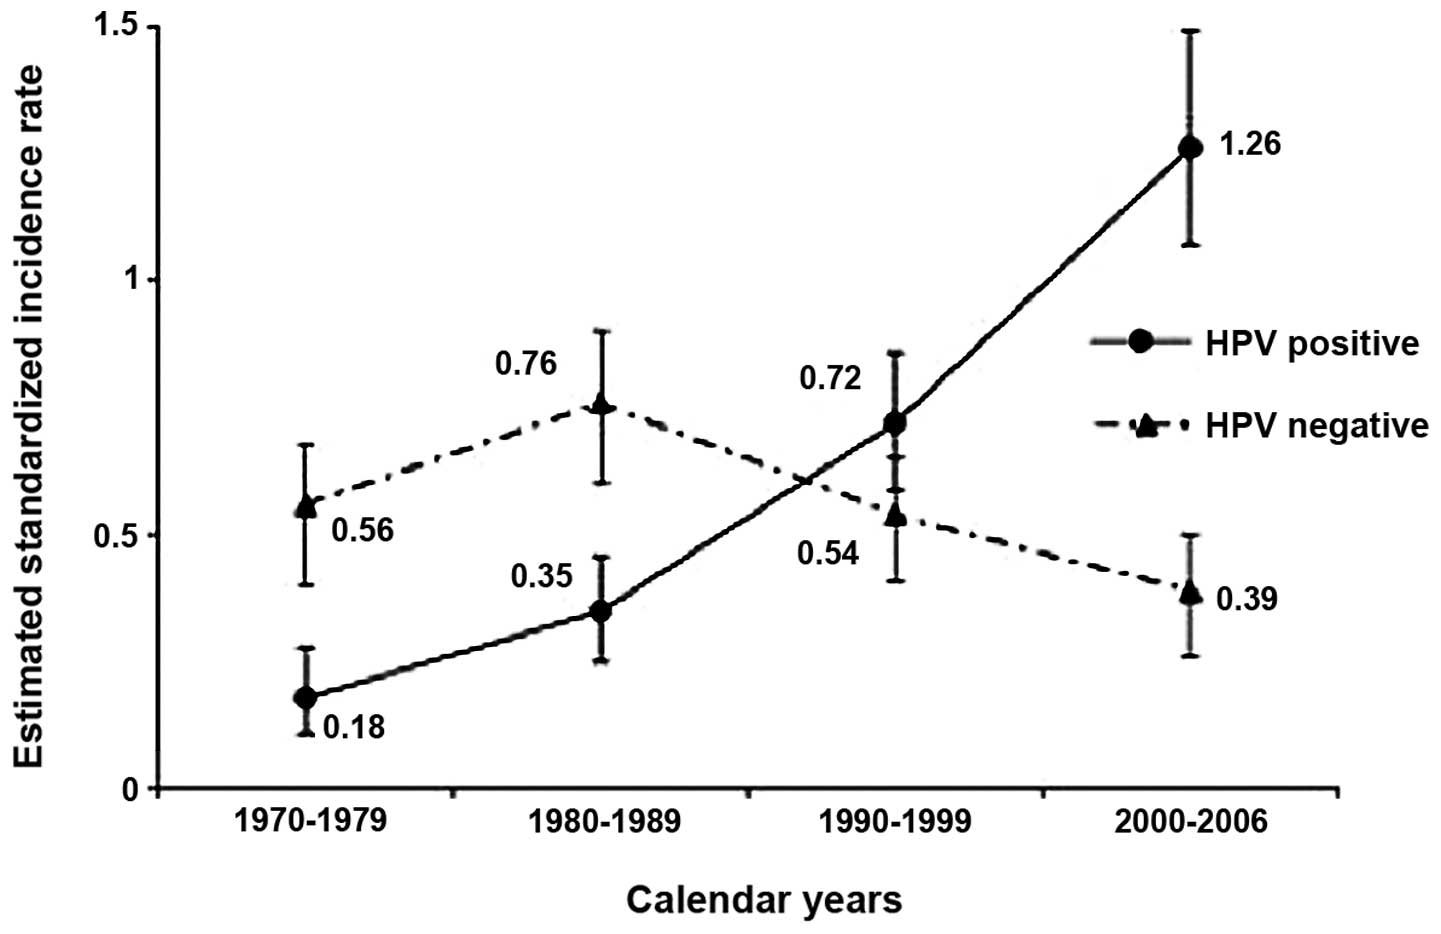 human papillomavirus and rising oropharyngeal cancer incidence in the united states